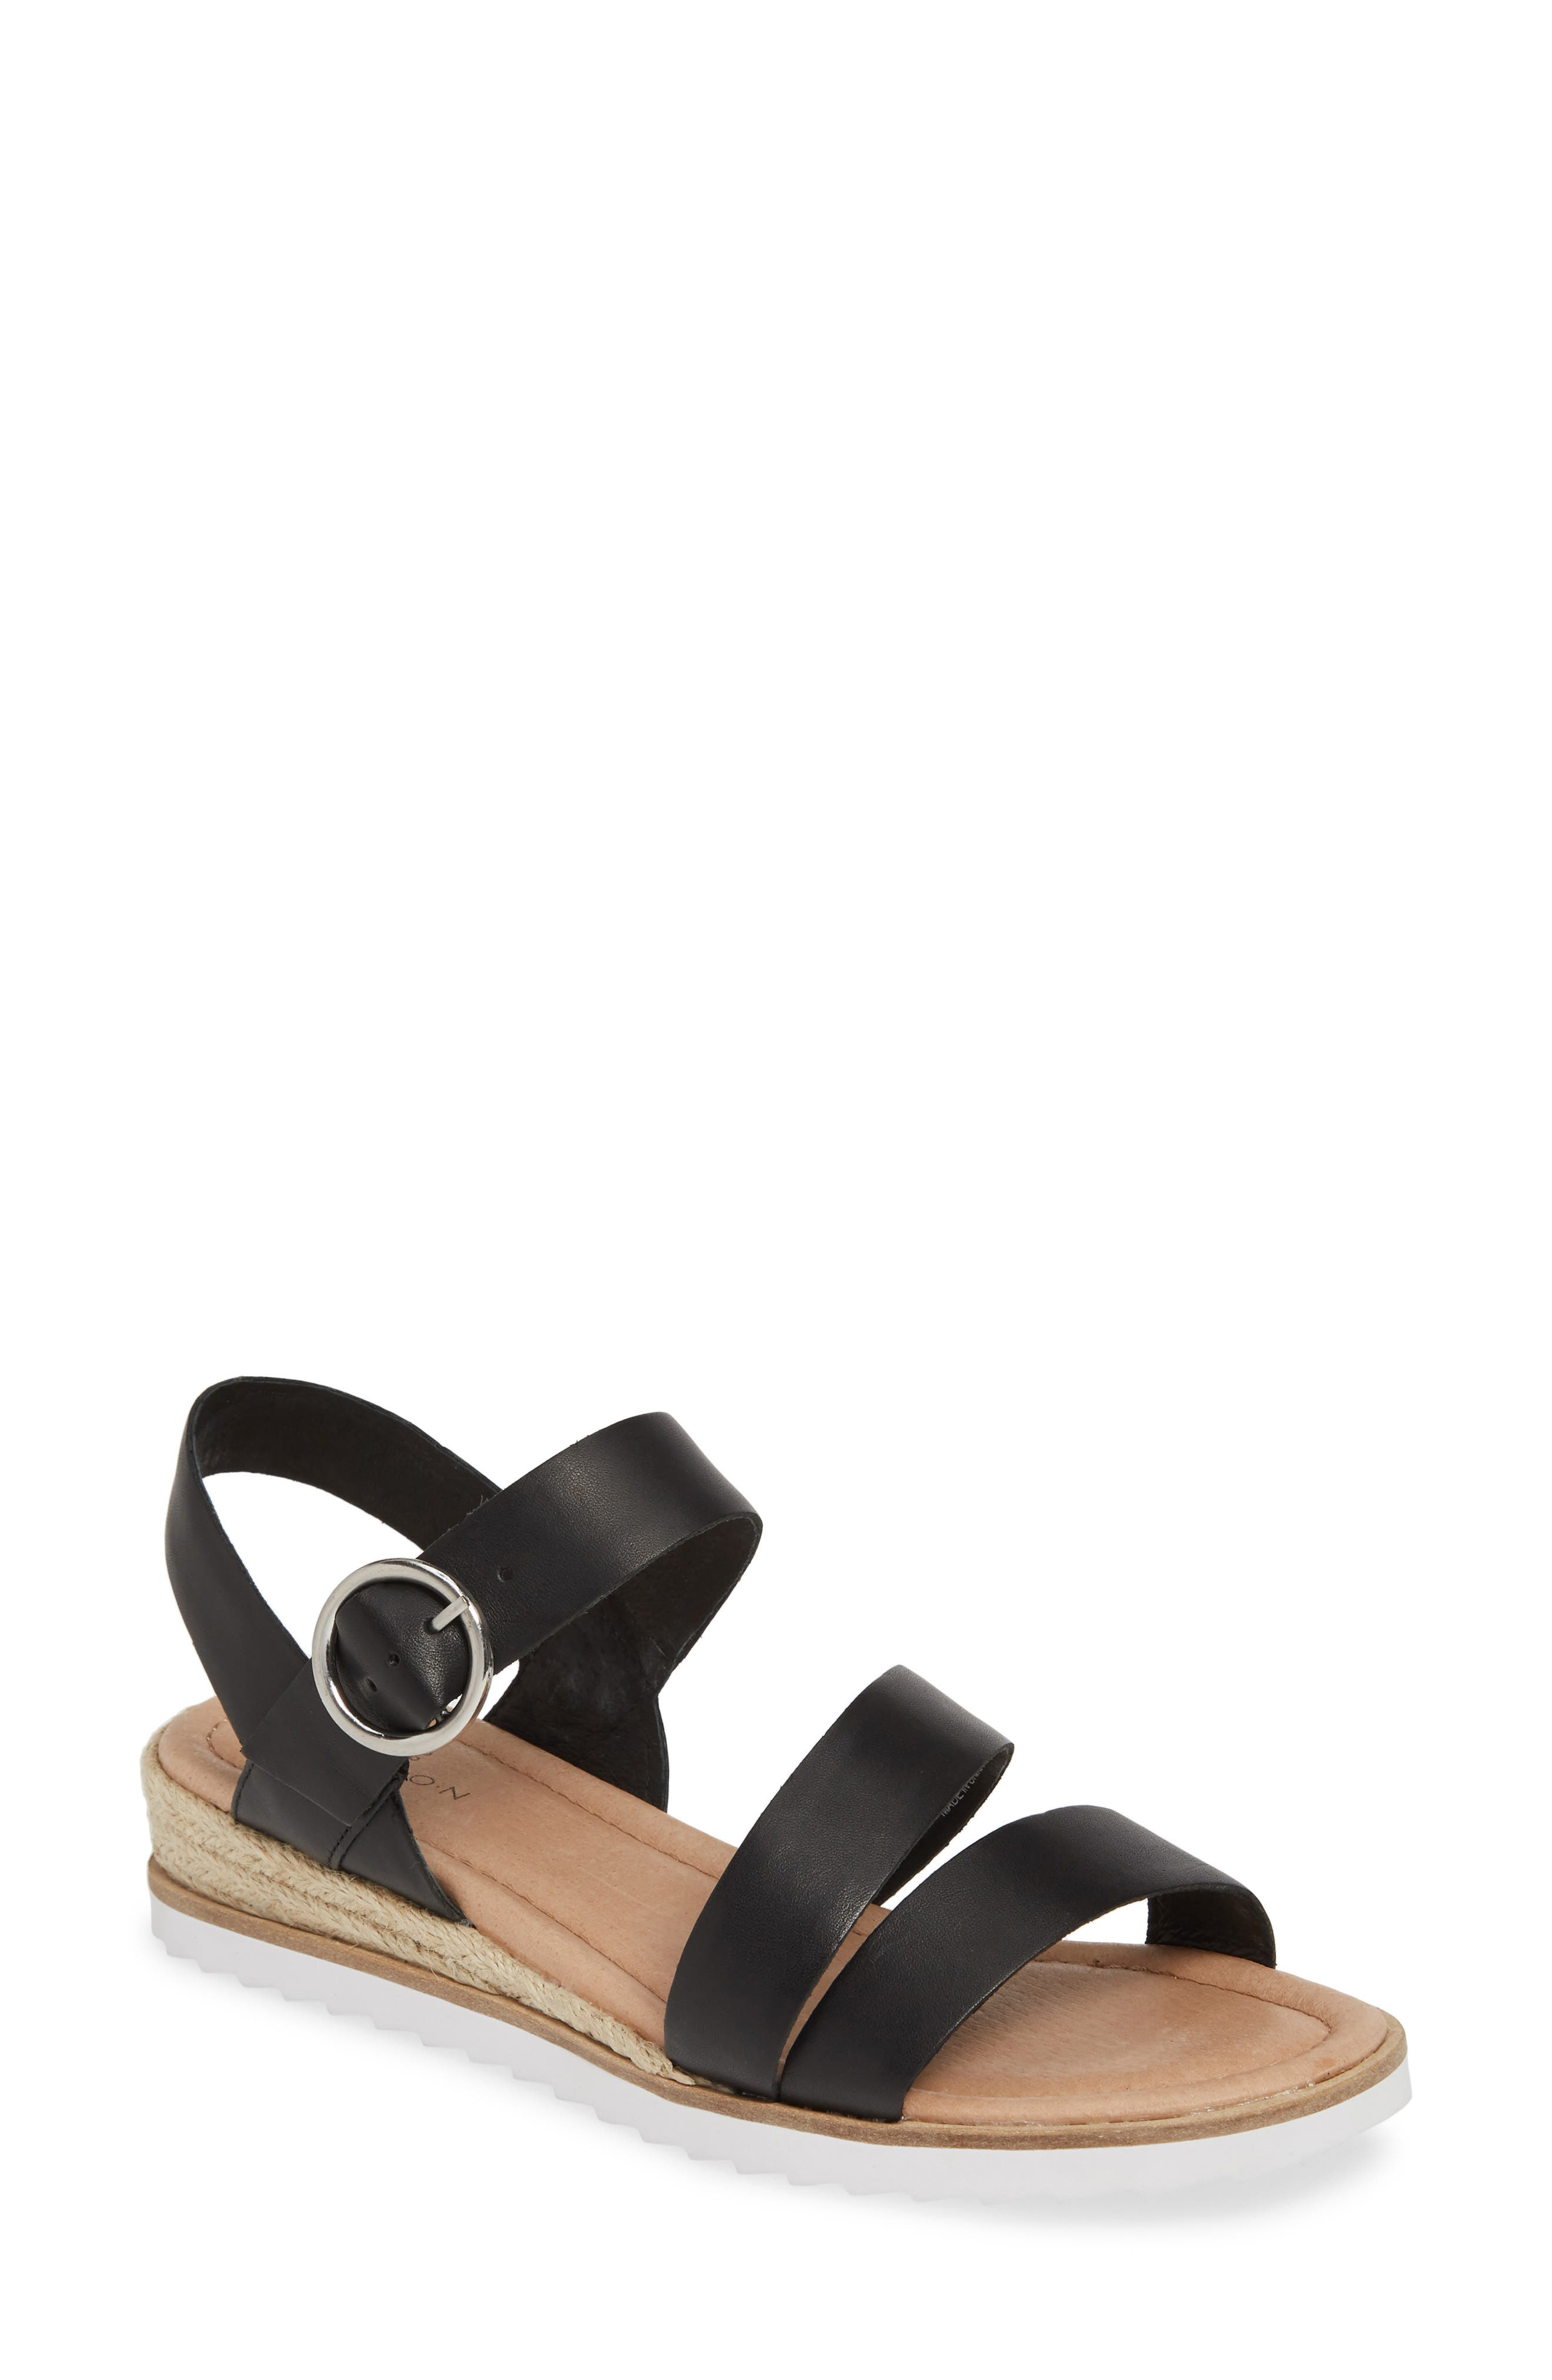 CASLON<SUP>®</SUP>, Caslon Cameron Espadrille Wedge Sandal, Main thumbnail 1, color, BLACK LEATHER